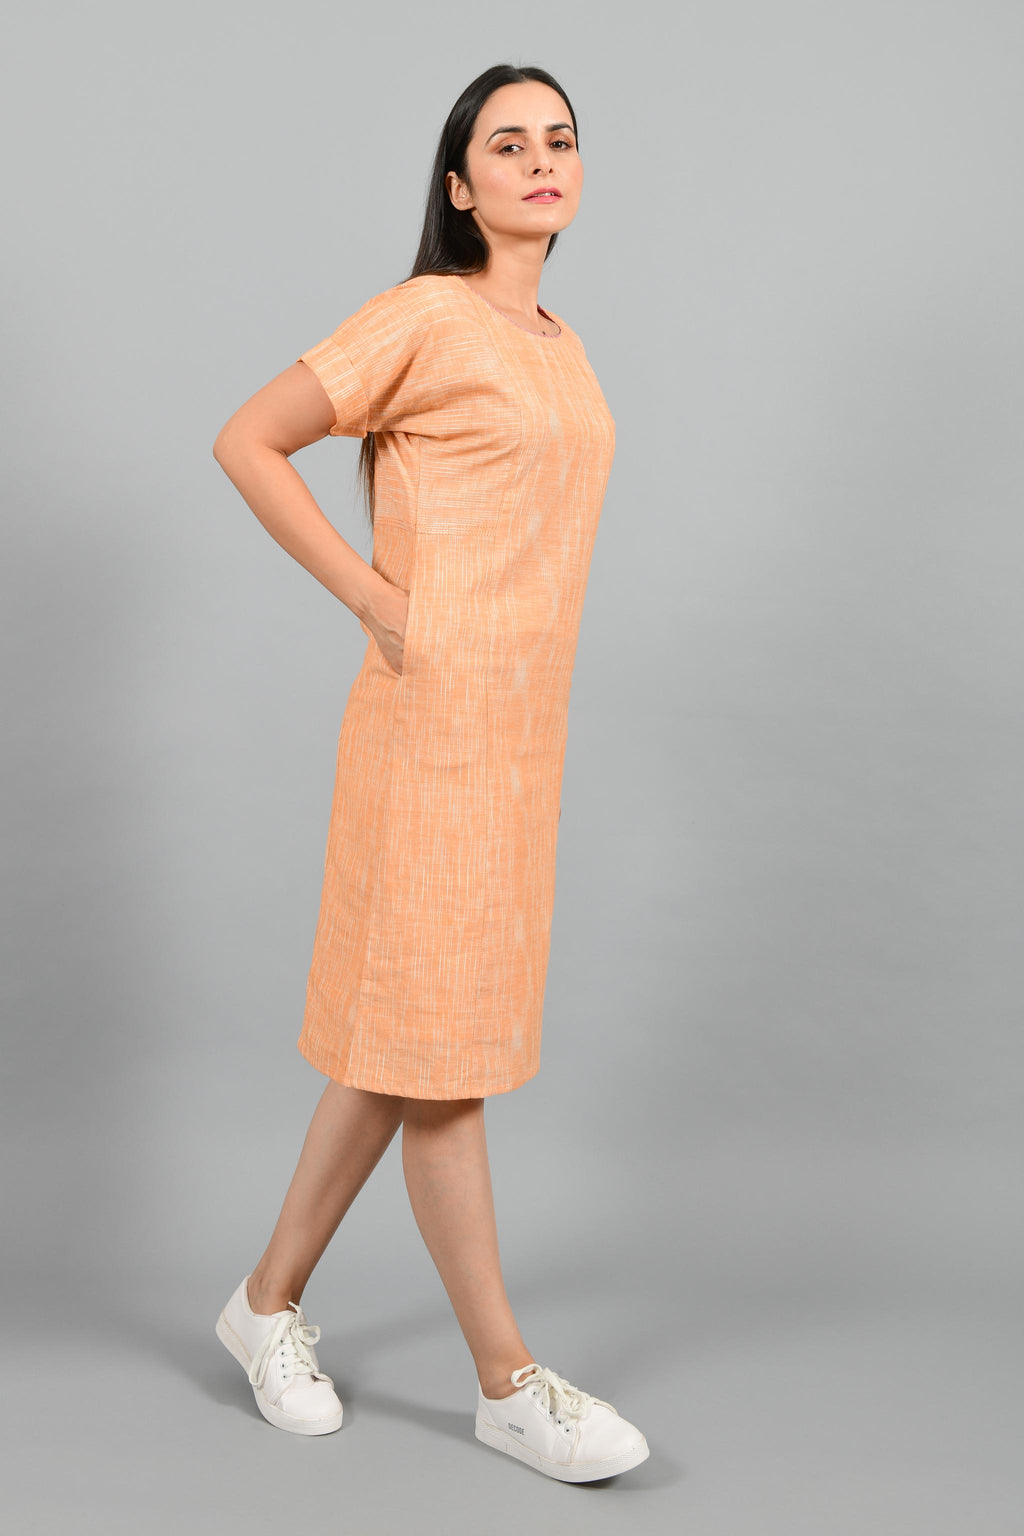 Stylised side pose of an Indian female womenswear fashion model in an orange space dyed handspun and handwoven khadi cotton panelled dress by Cotton Rack.